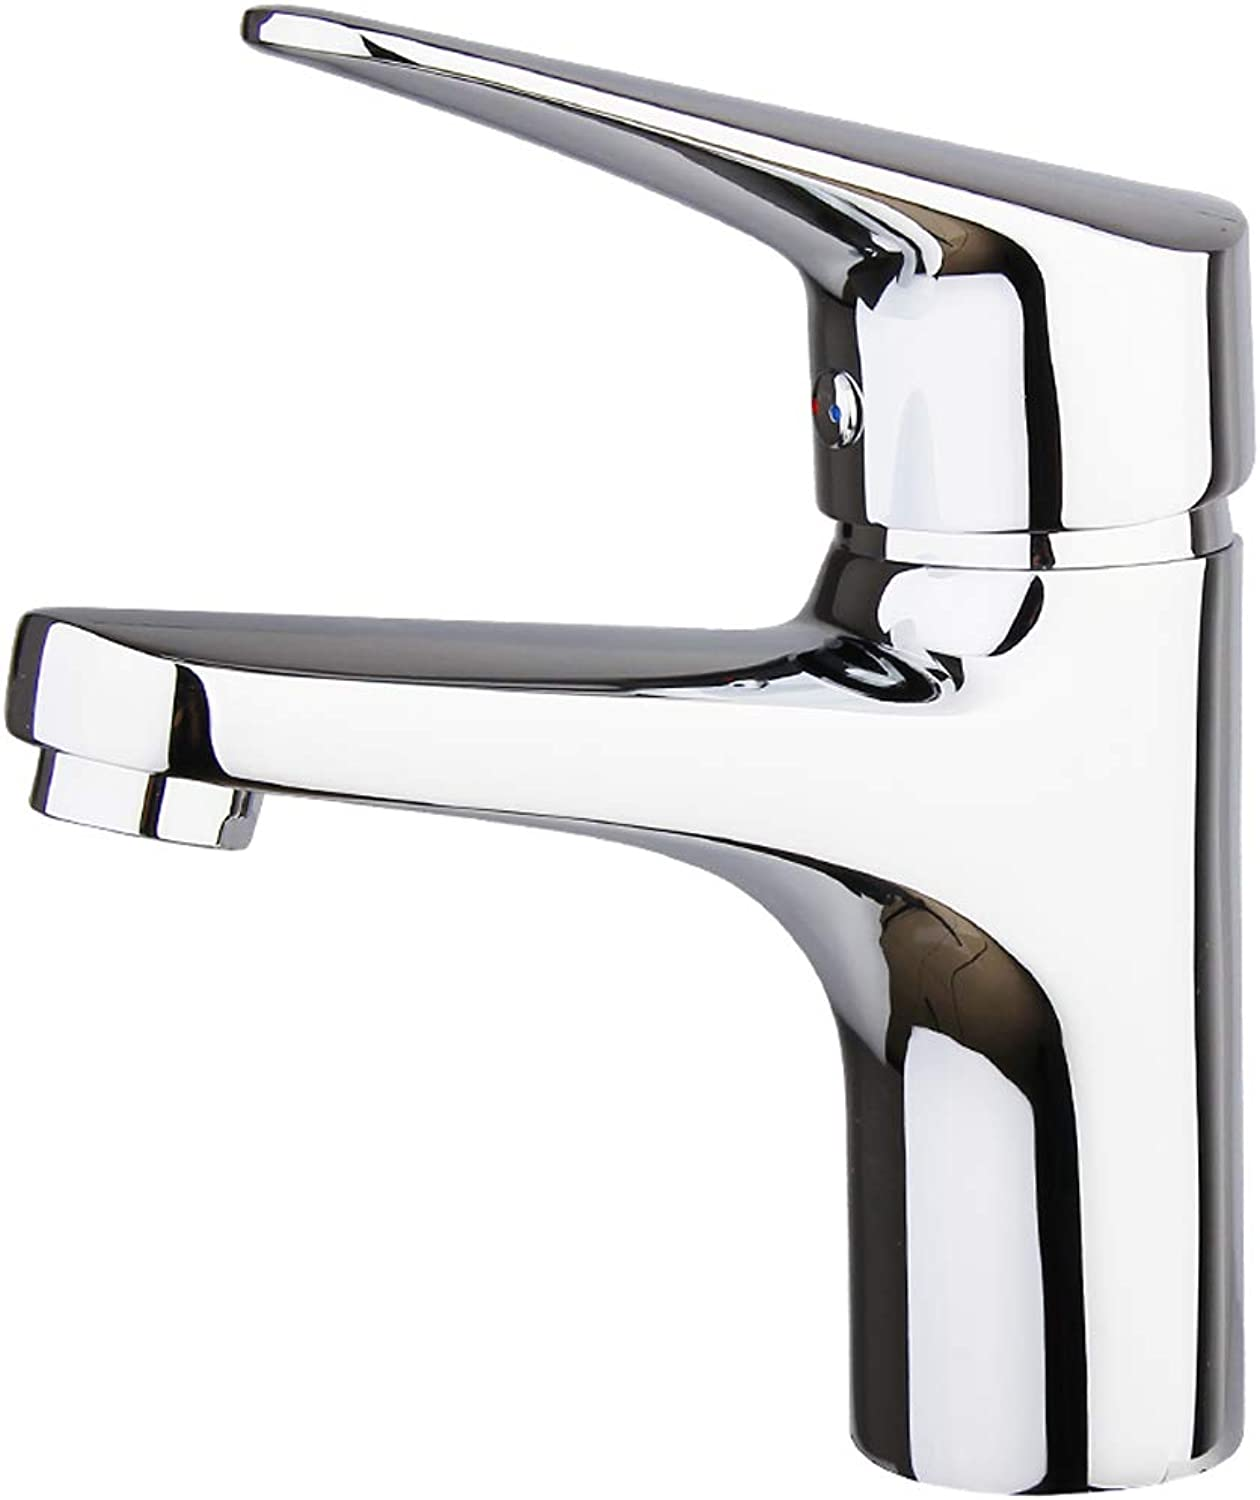 Ppigle Faucet ? Brass Thick Hot And Cold Basin Mixer ? Washbasin basin Faucet Durable Hot And Cold Double Control Adjustment Handle